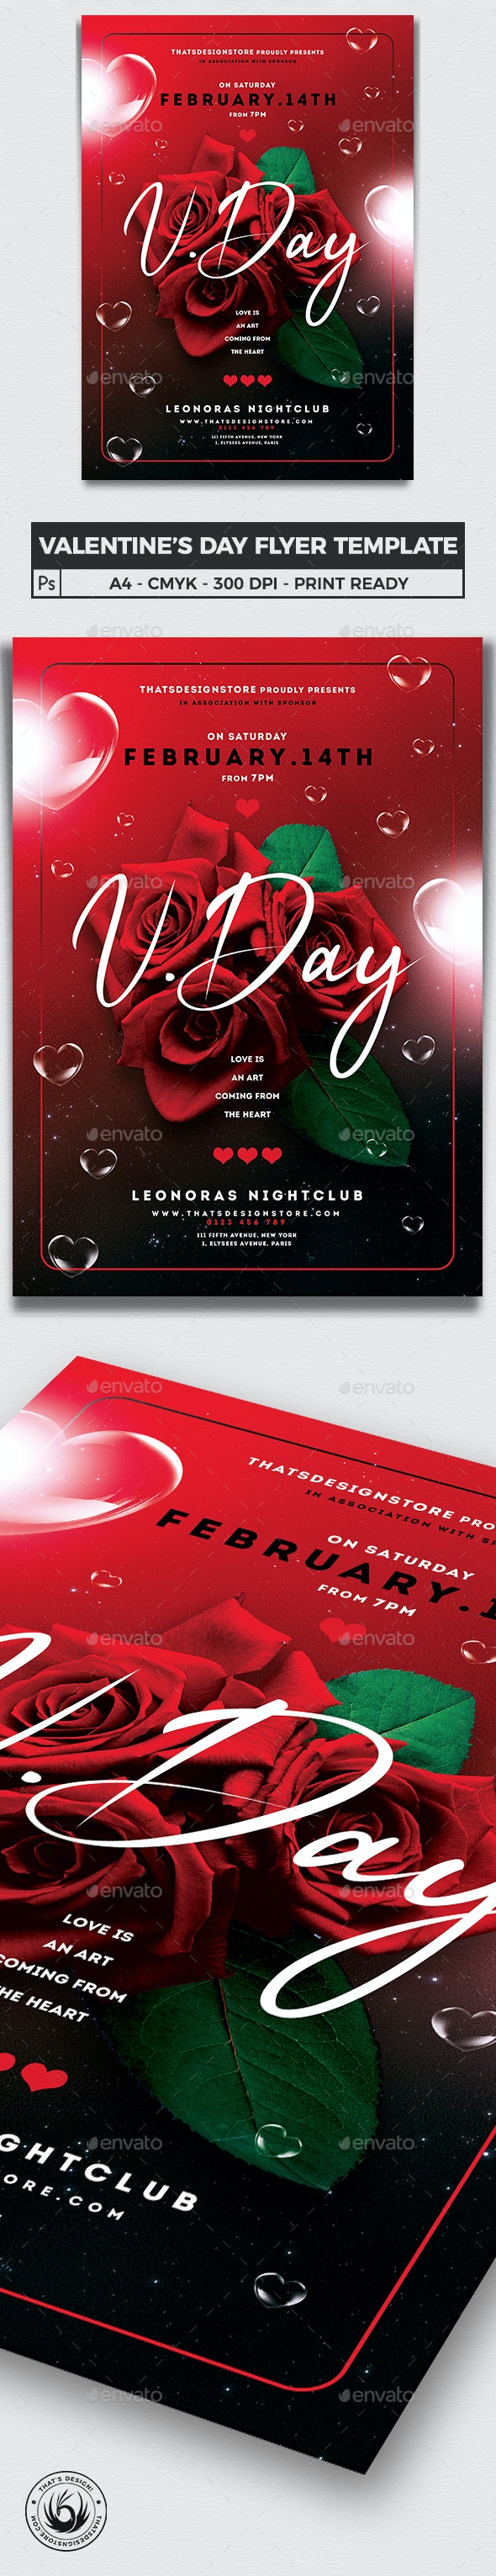 Valentines Day Flyer Template V20 - Clubs & Parties Events